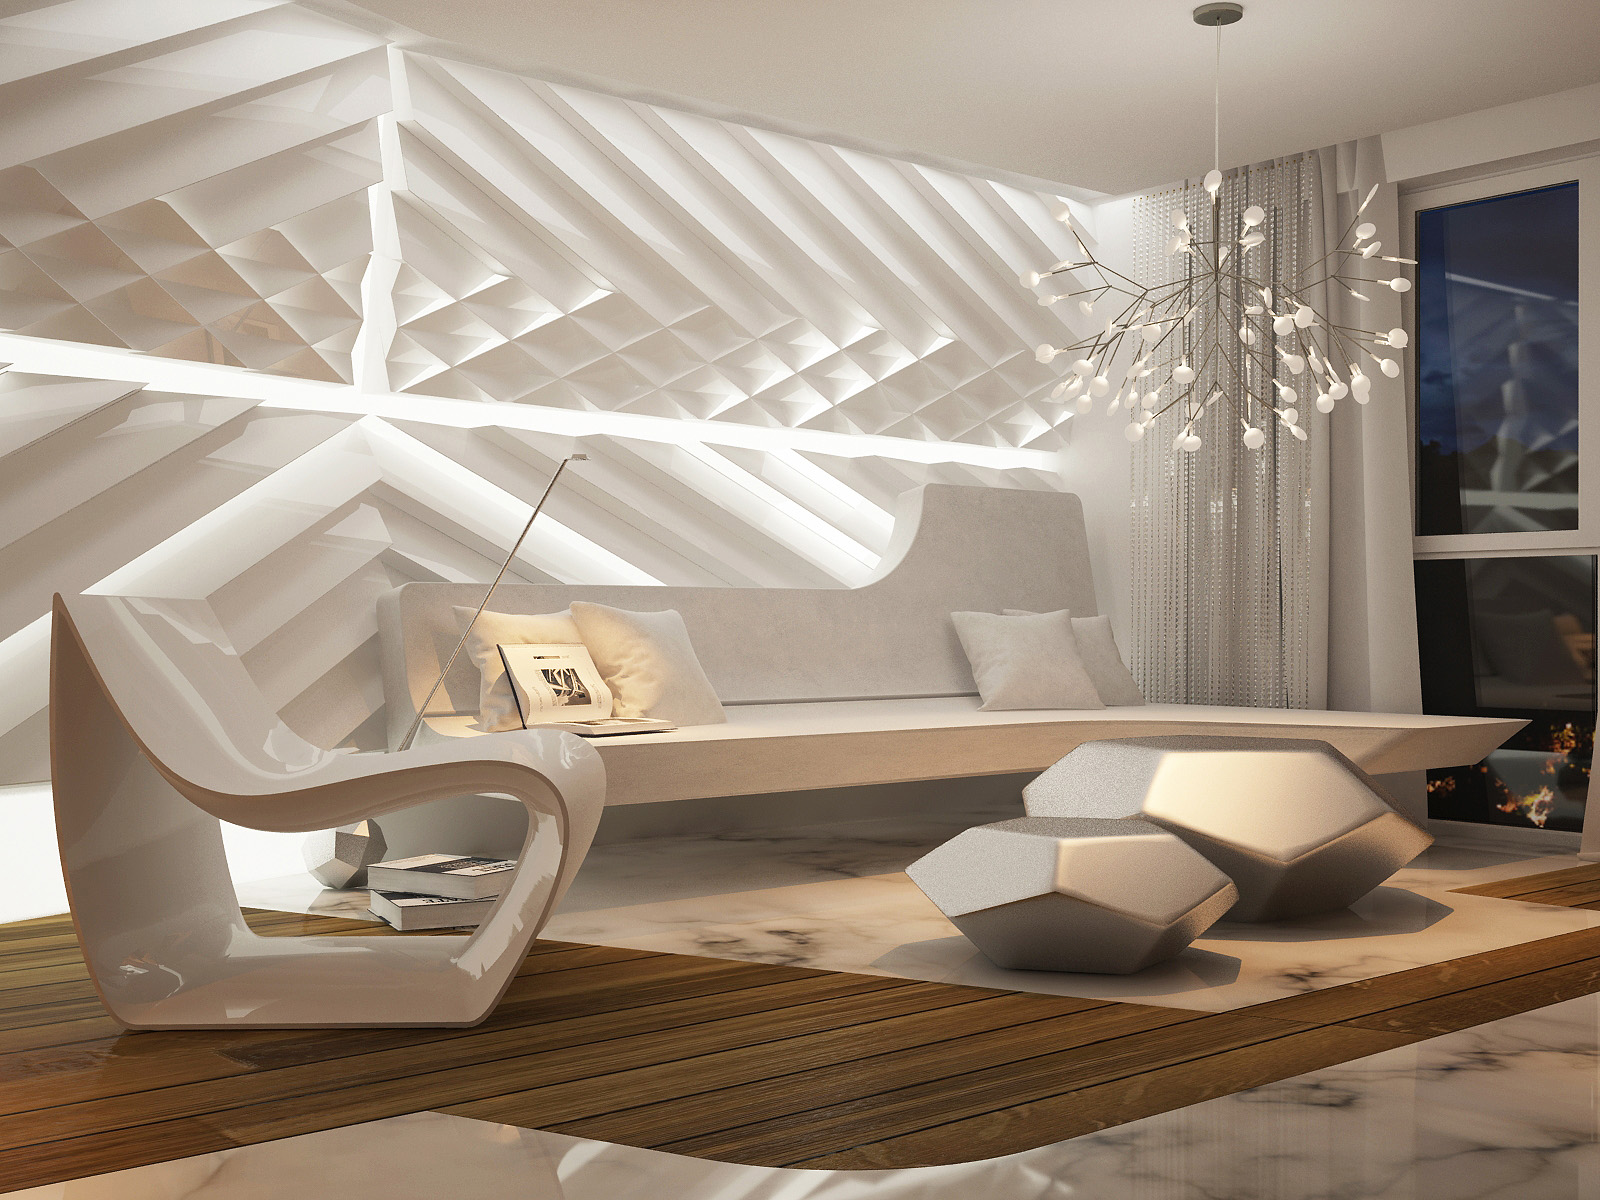 futuristic interior design - Interior Design On Wall At Home